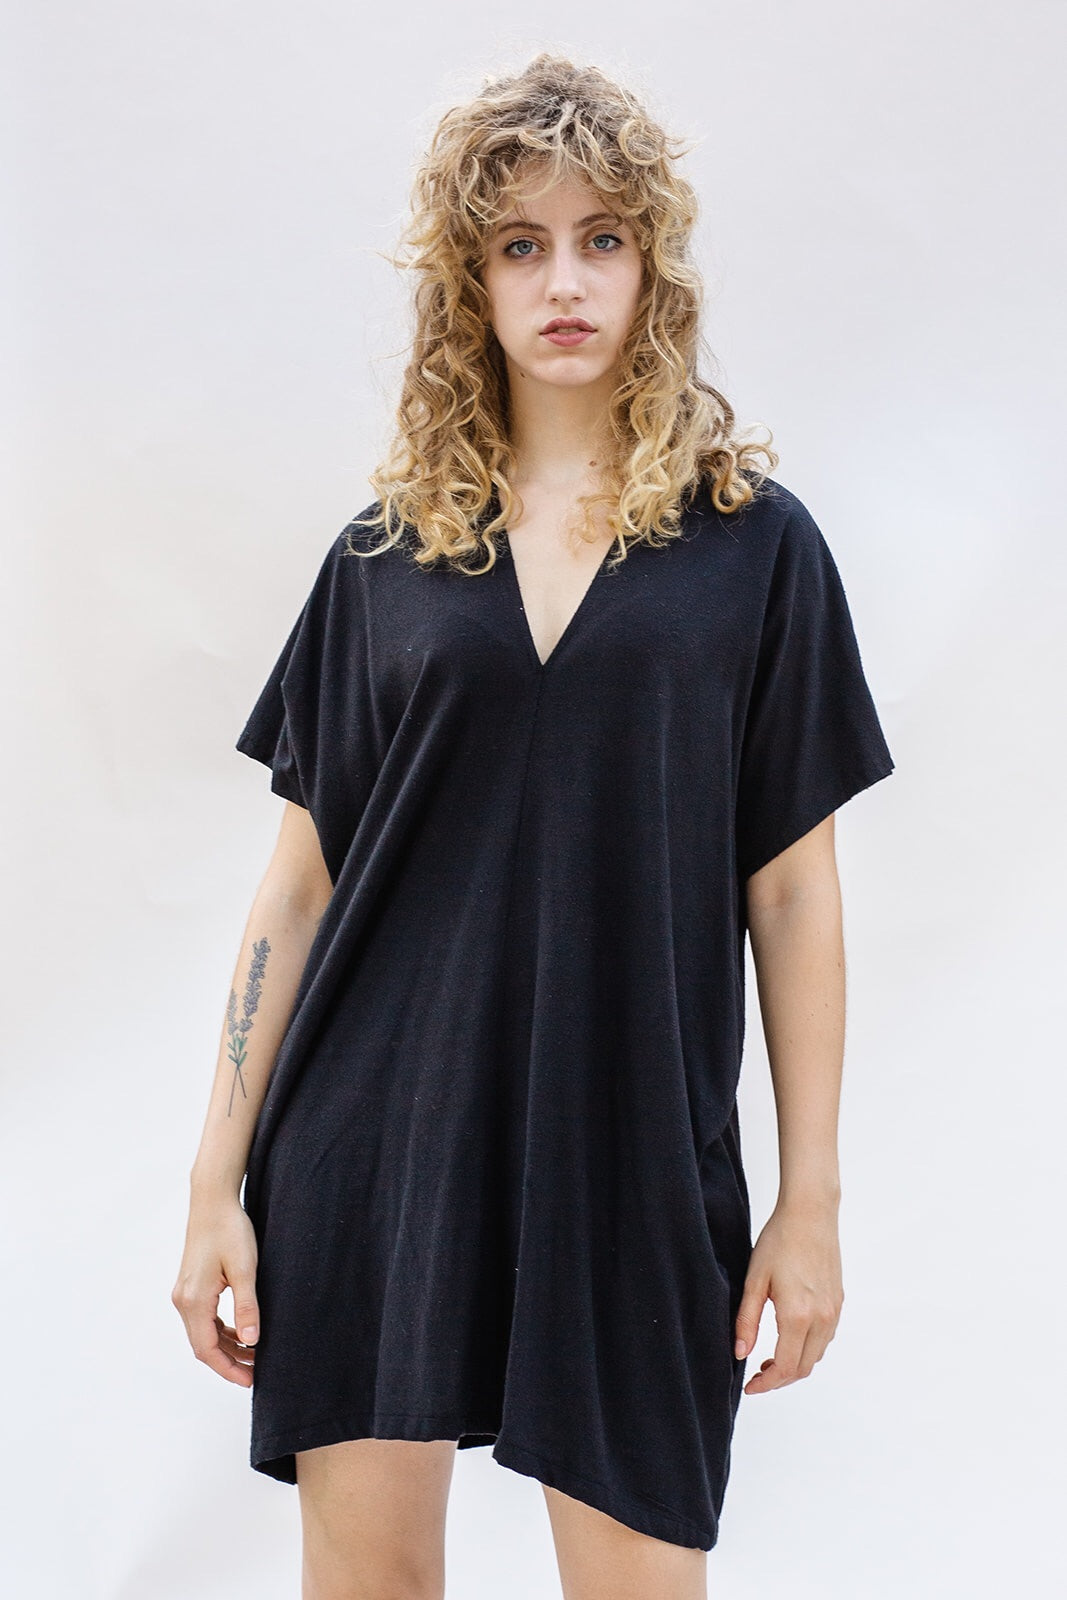 Aveline Mini Dress in Black Silk